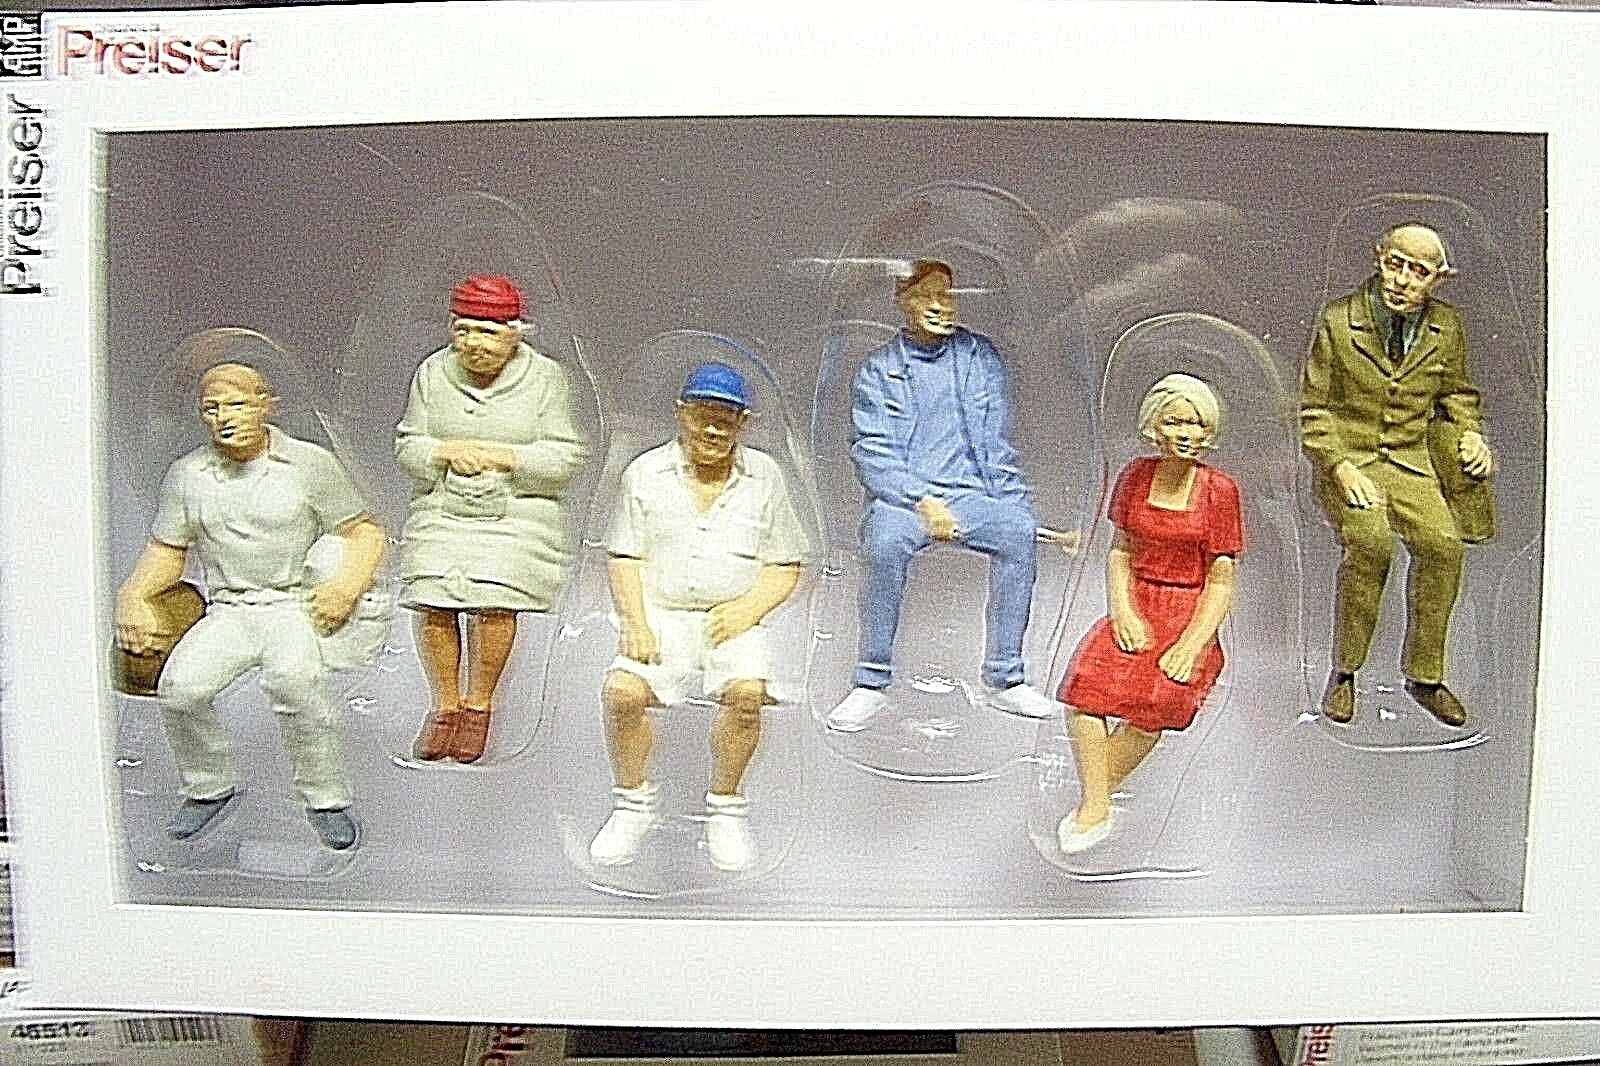 Preiser G scale 1 22.5 SIX SEATED Figures ( including man with ball cap) 45152